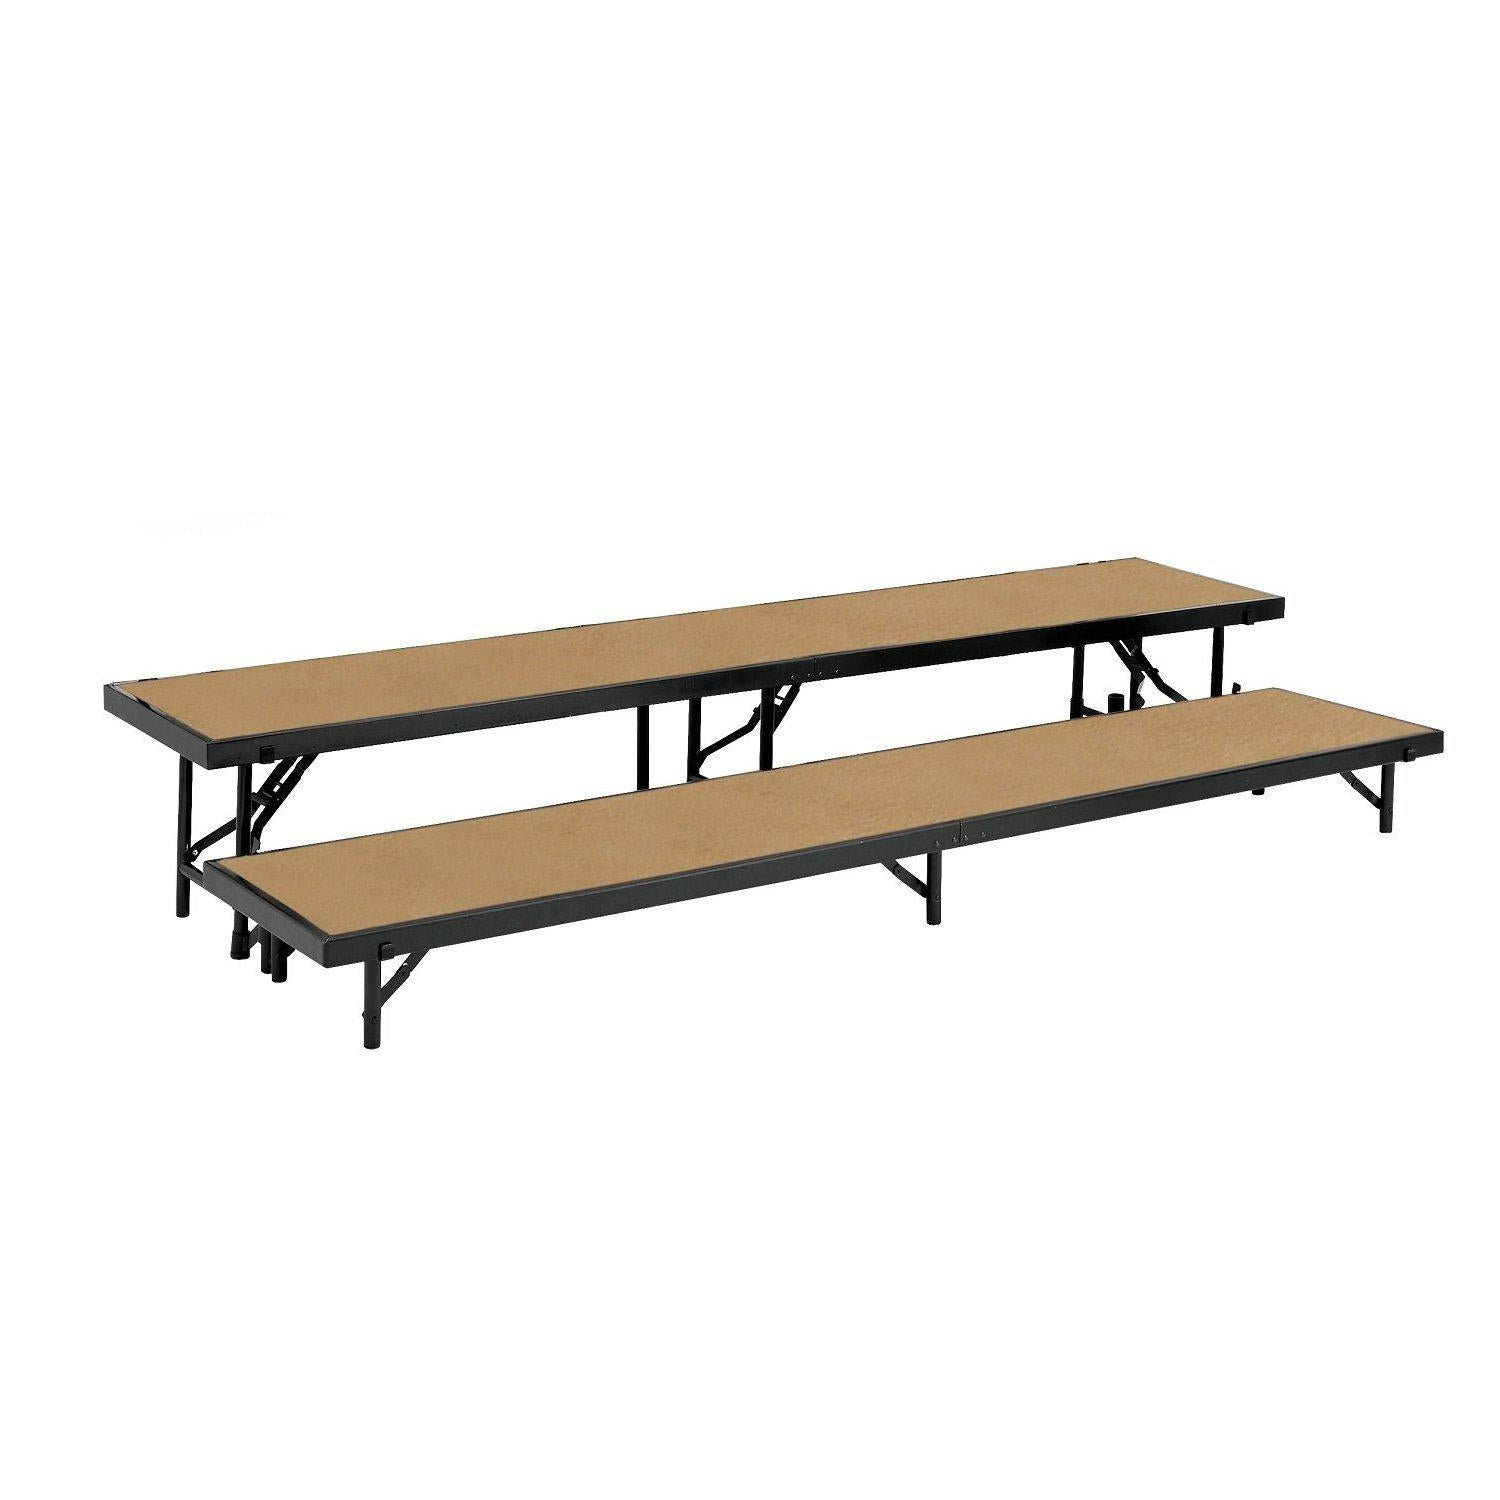 "Multi-Level Straight Standing Choral Risers, 18"" x 96"" Platforms"